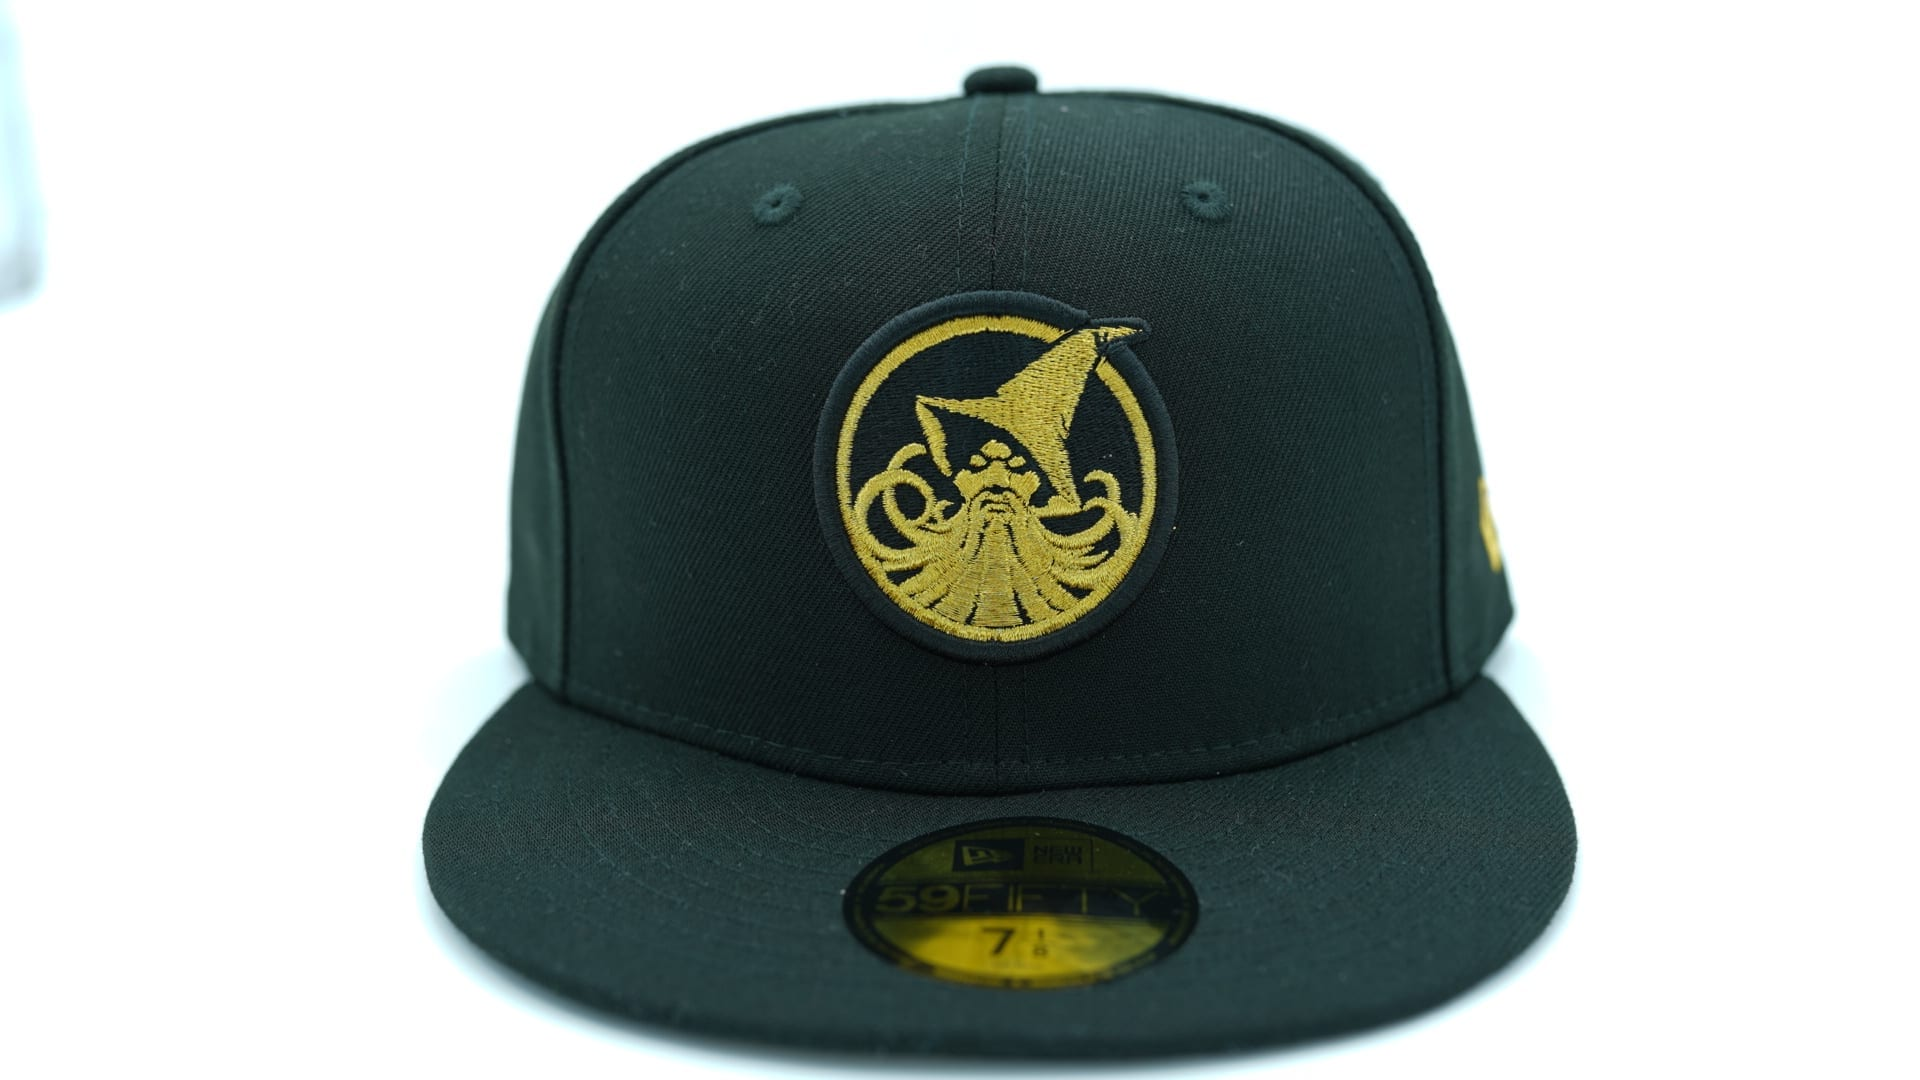 5131291089f spain new era one piece 59fifty roronoa zoro fitted cap f946c 30762  italy  15th anniversary edition 59fifty fitted cap a8d2a f161d